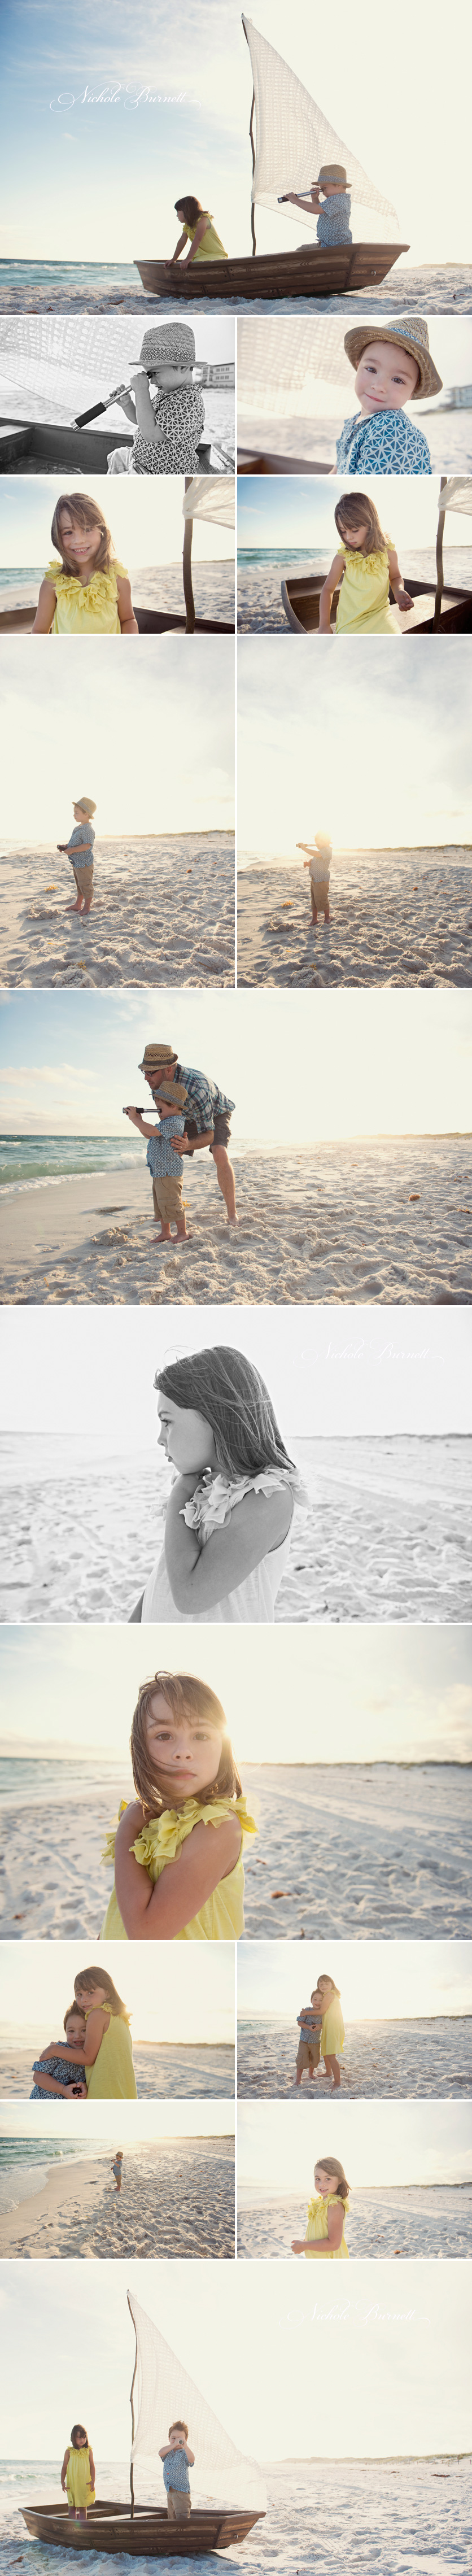 Santa Rosa Beach Whimsical Photographers